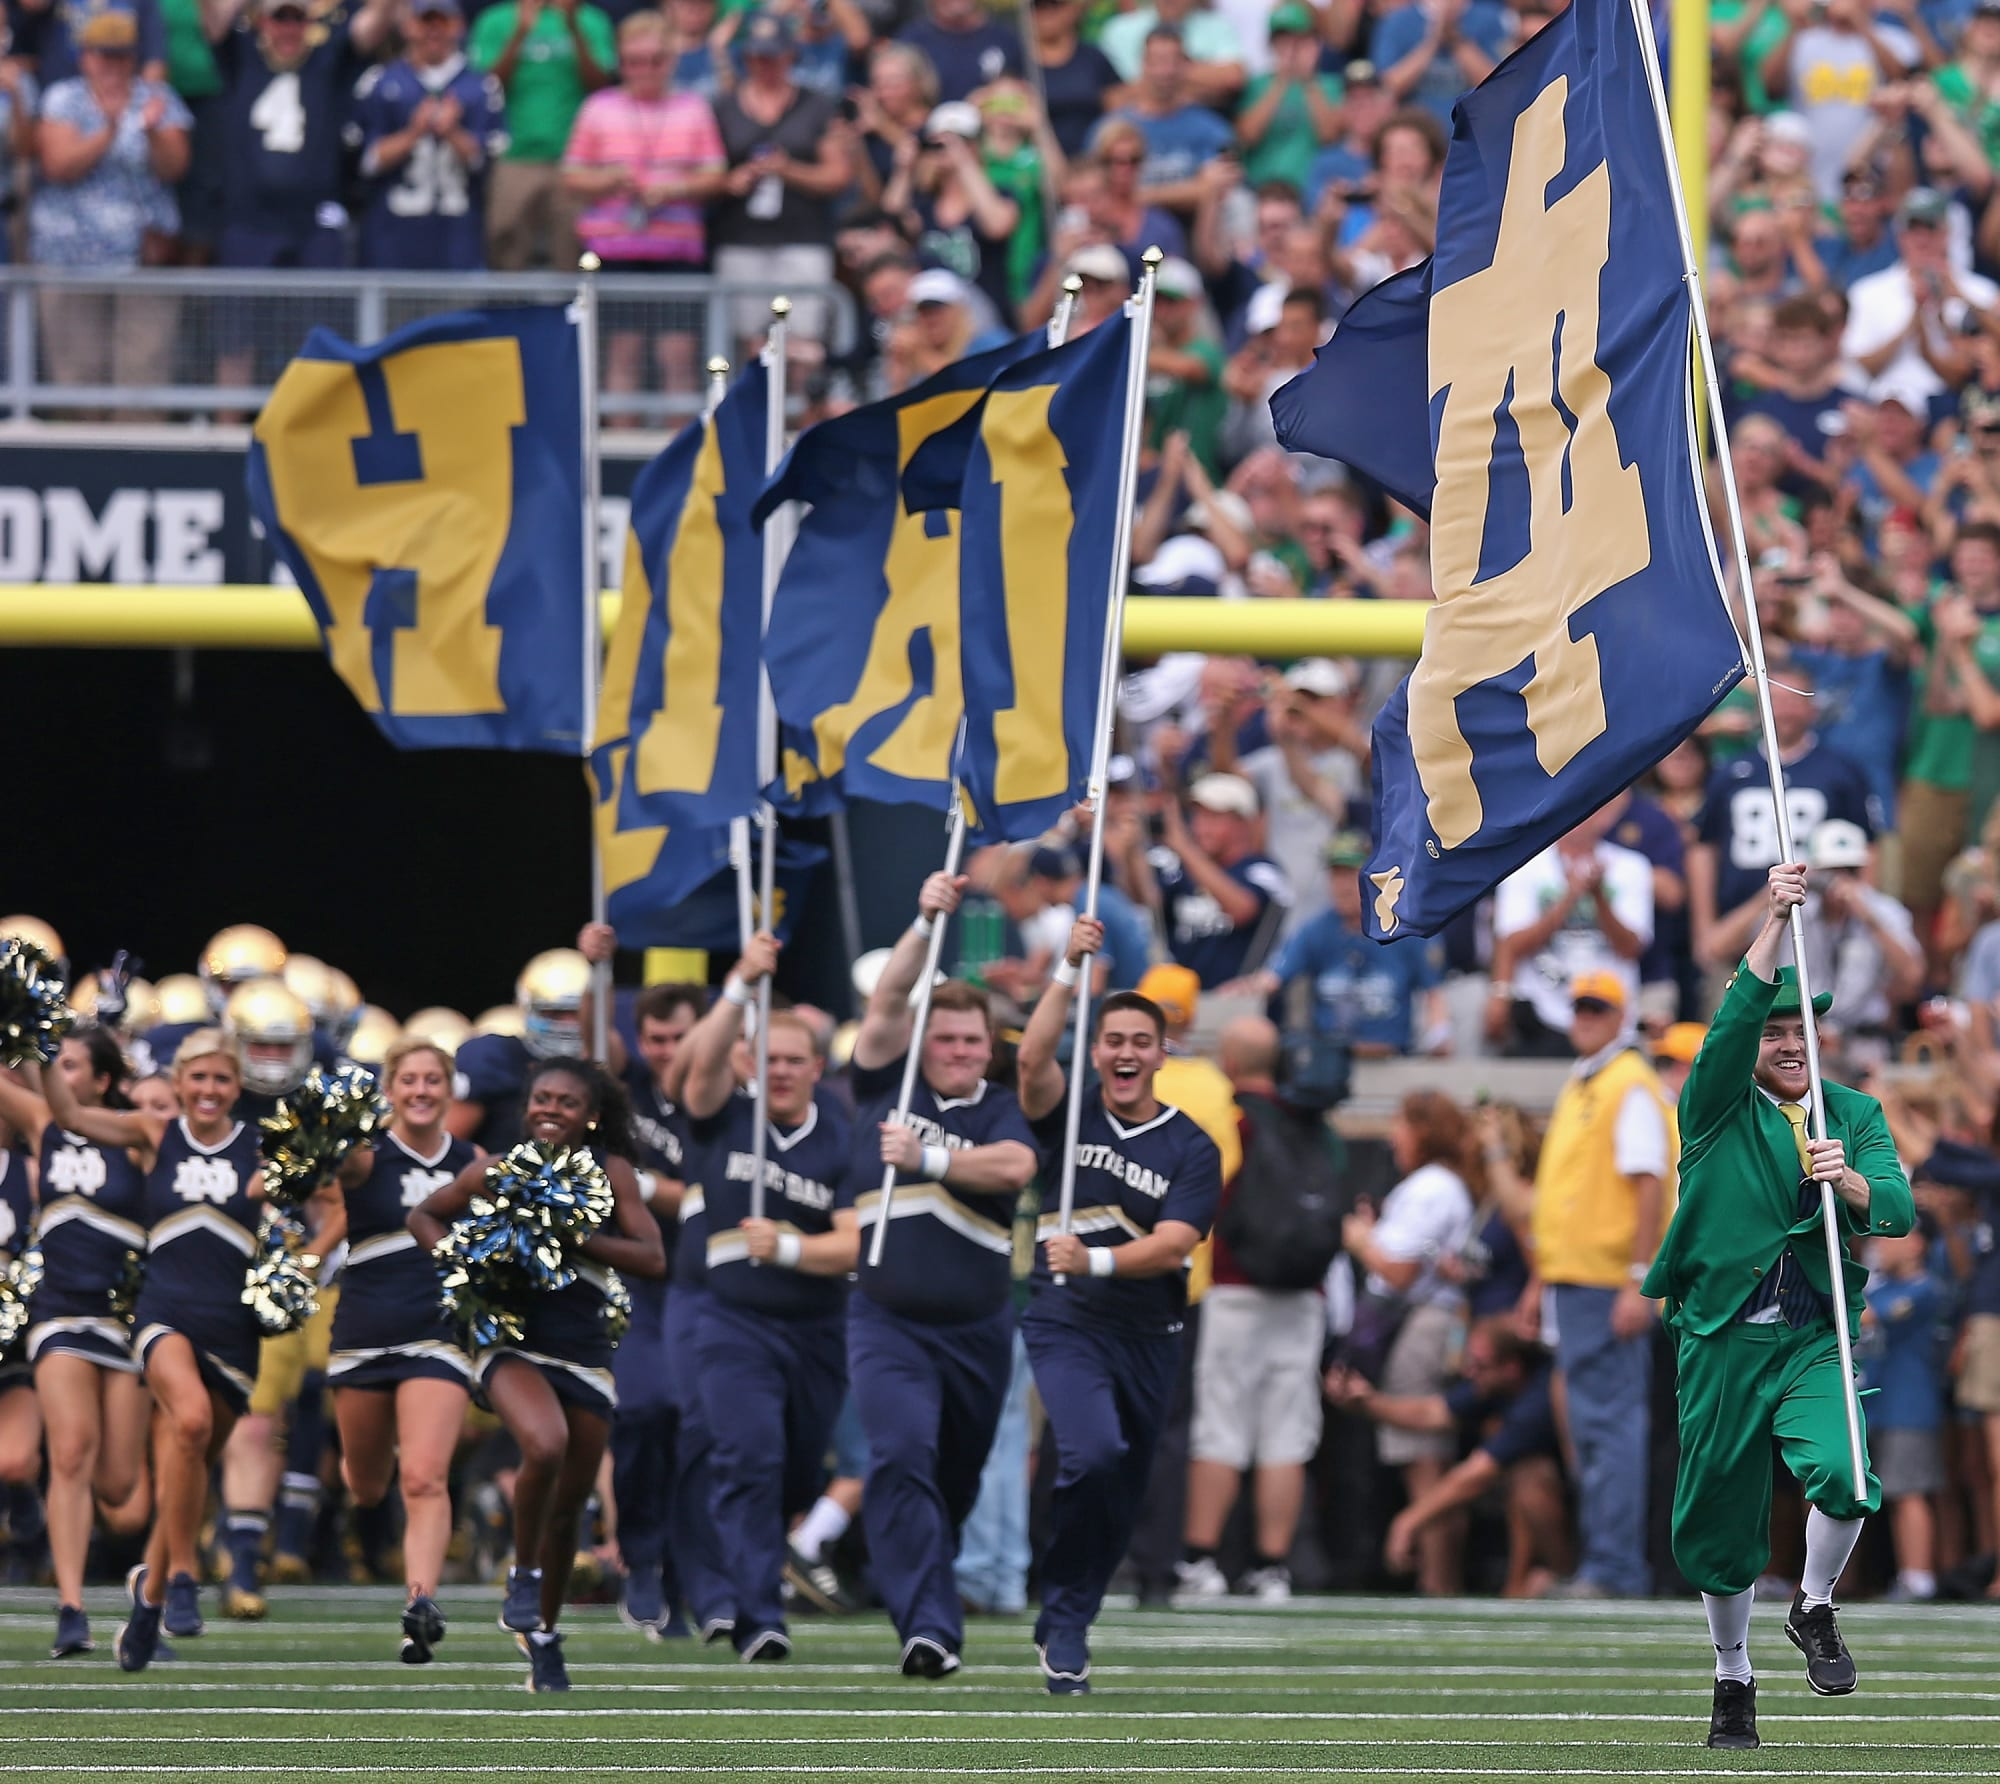 Notre Dame Football Sleepers to Watch in 2018: Jafar Armstrong